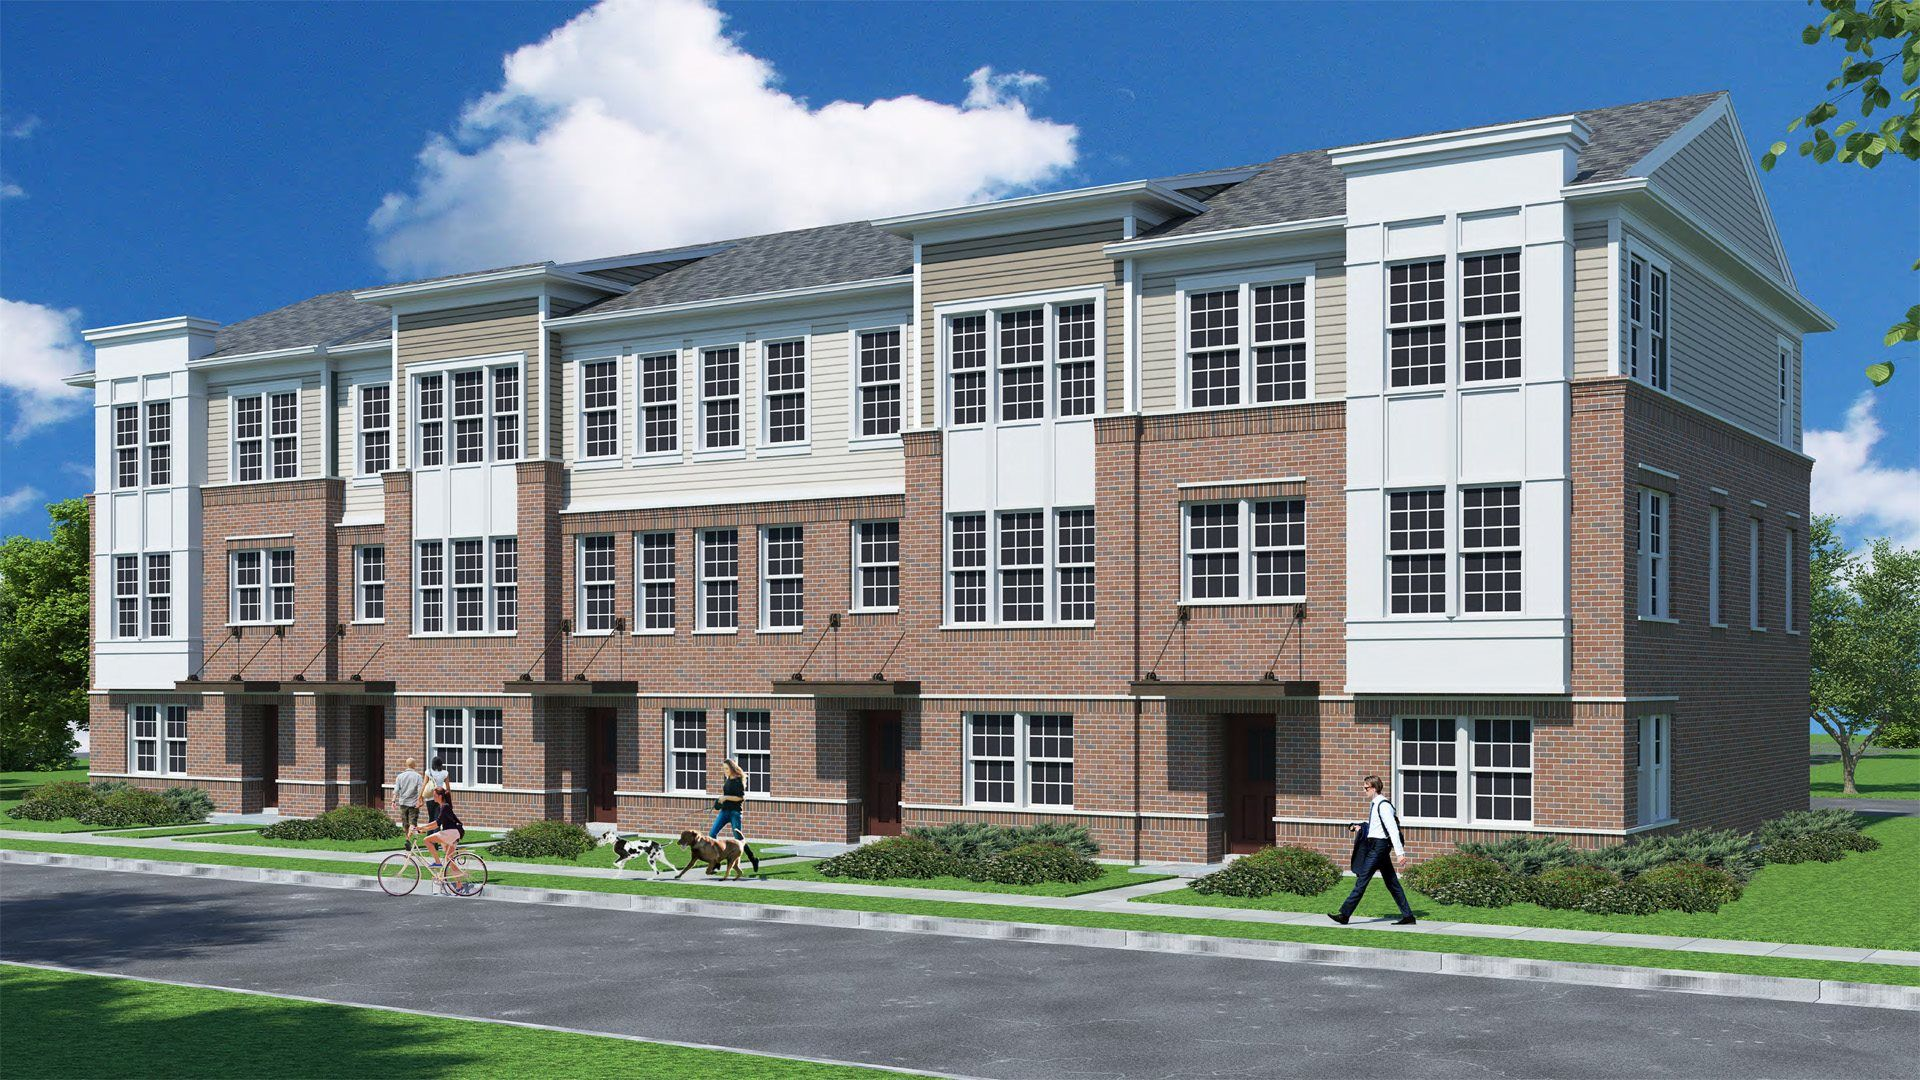 New Townhomes for sale in Naperville, IL by Lennar Homes